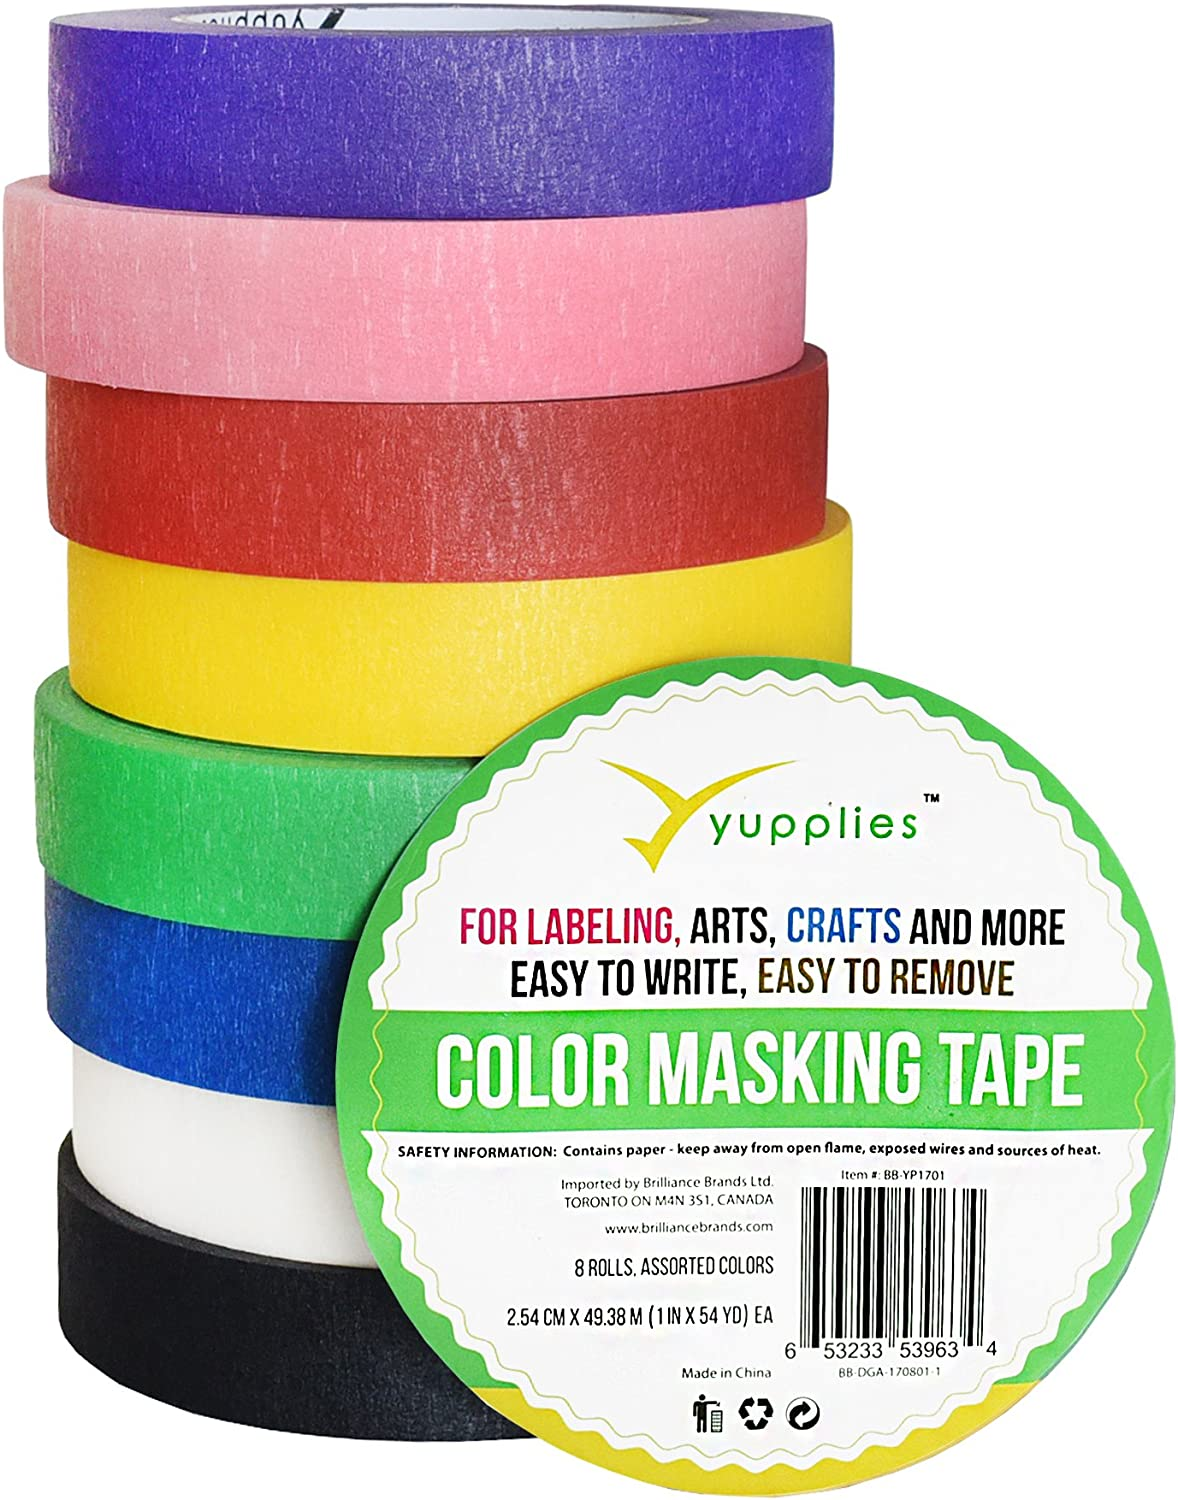 Home Decoration Office Supplies 7 Pieces Colored Masking Tape Rainbow Masking Tape Labelling Tape Graphic Art Tape Roll for Fun for Arts DIY